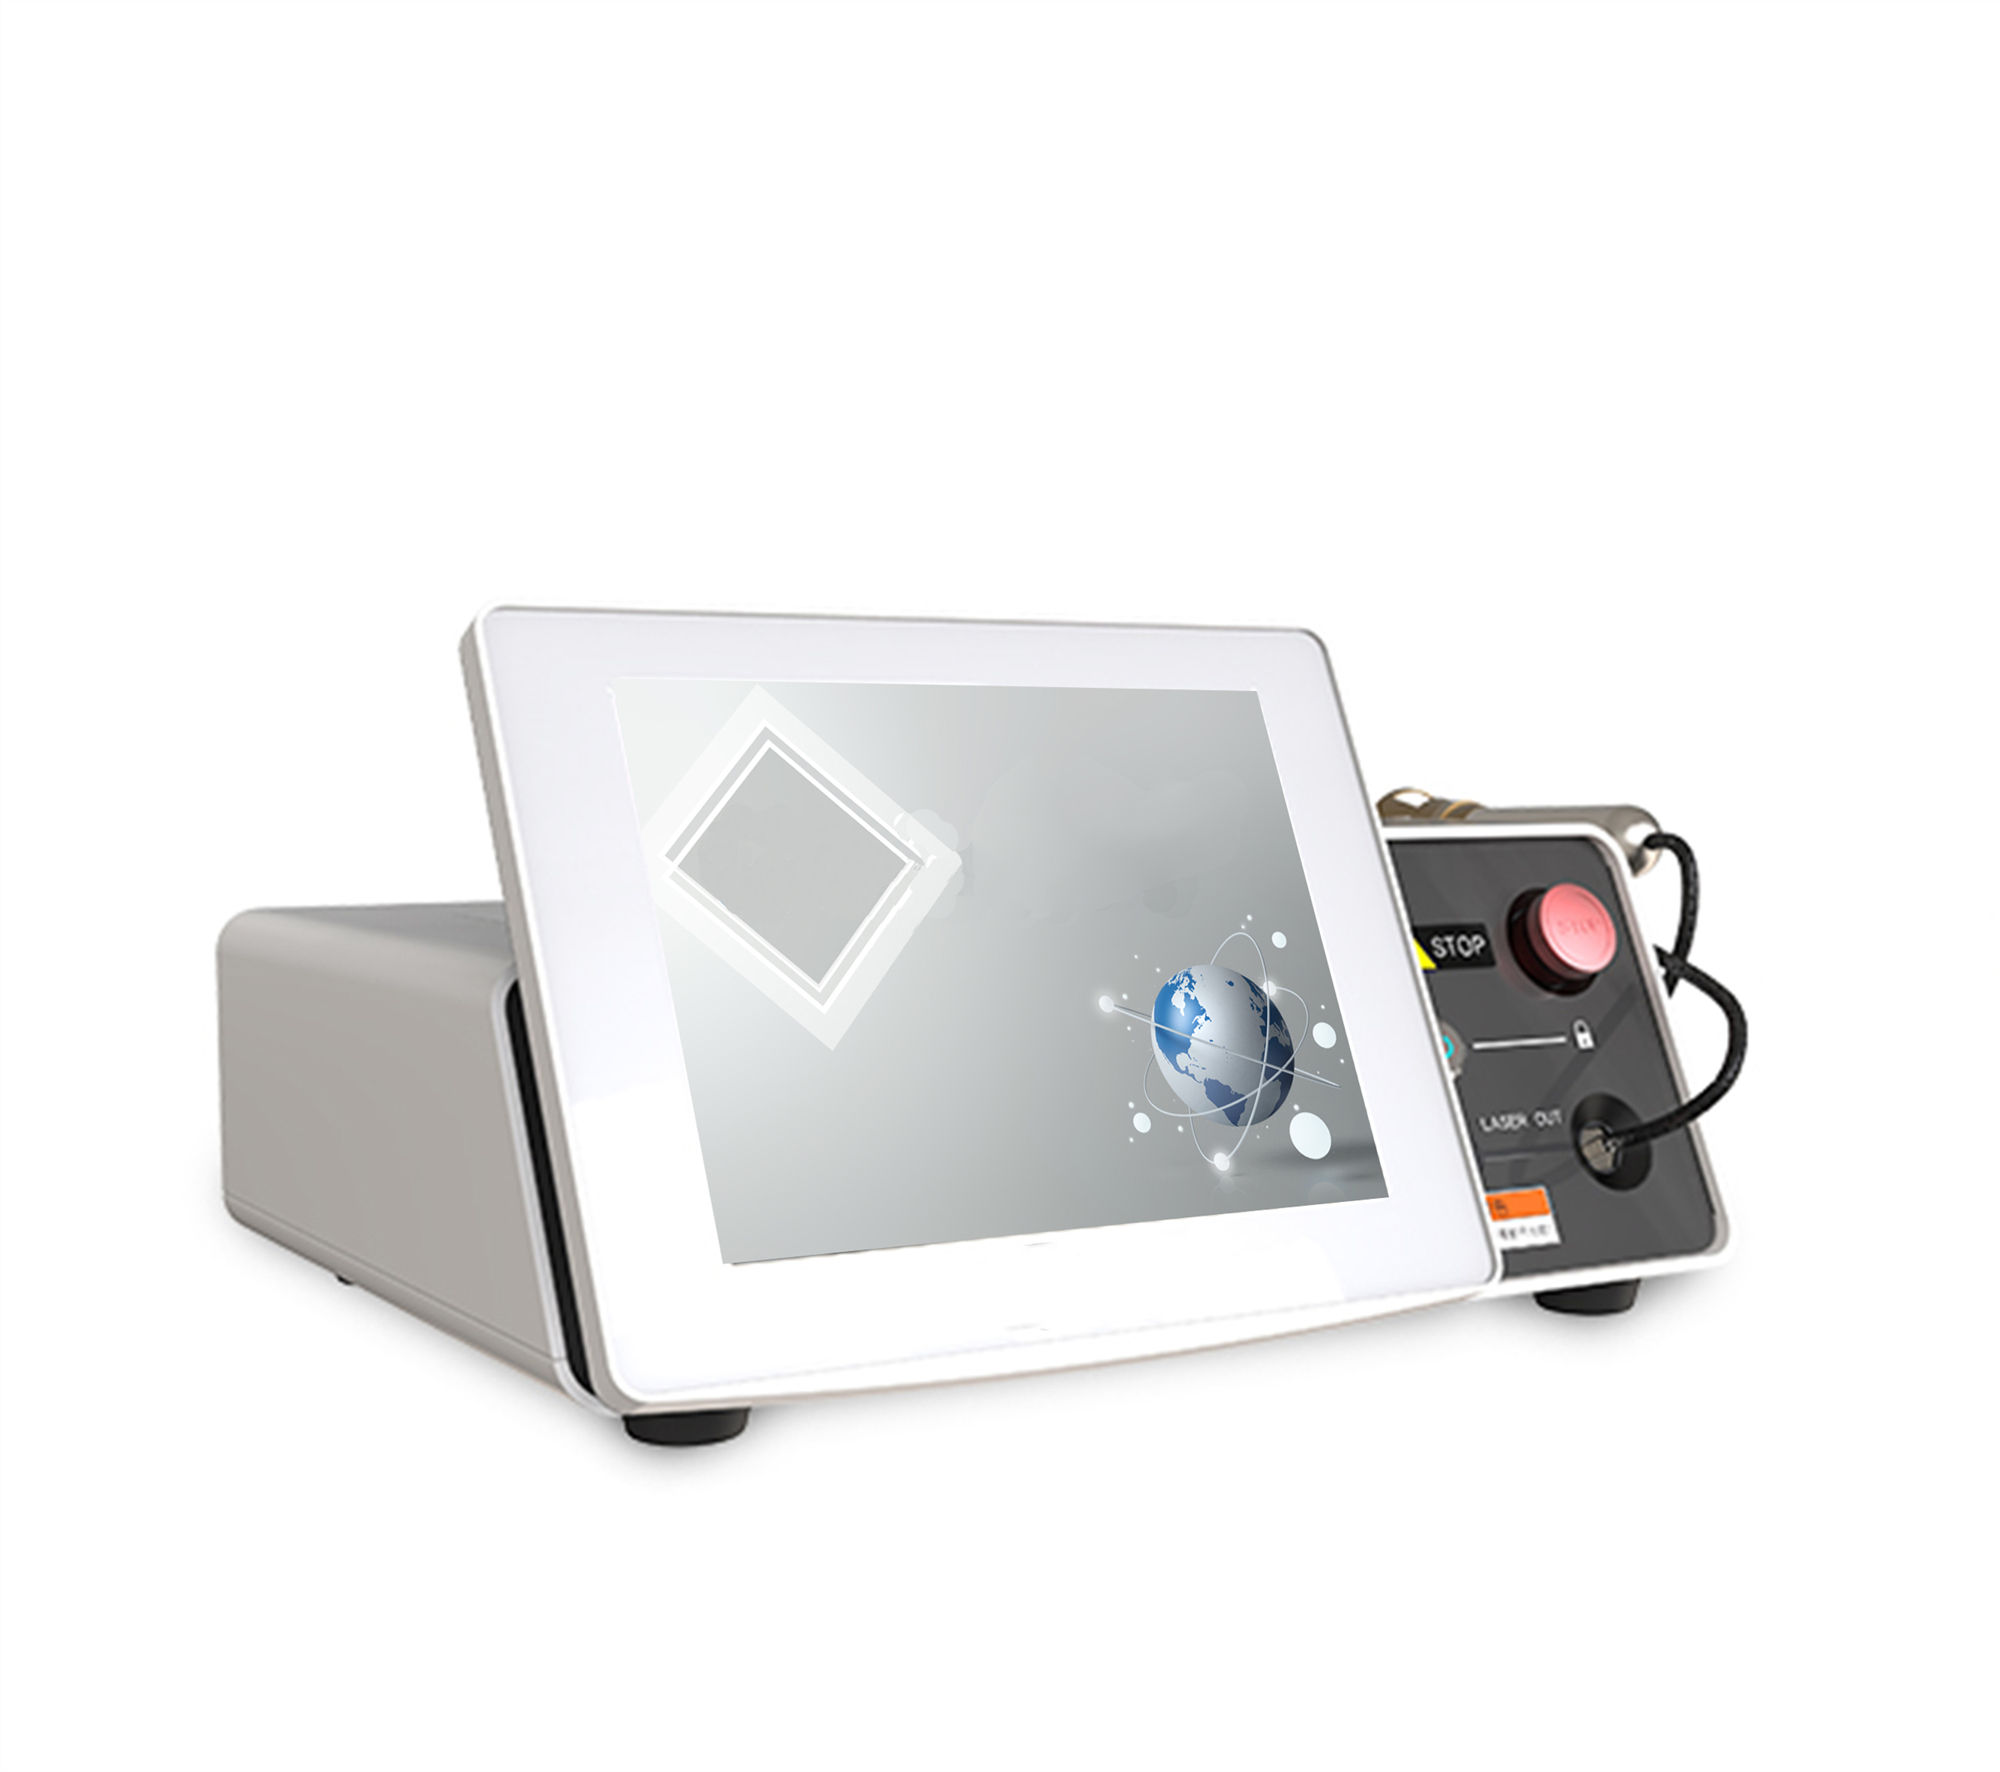 Surgery laser 980 1470 nm diode laser liposuction machine surgery laser equipments